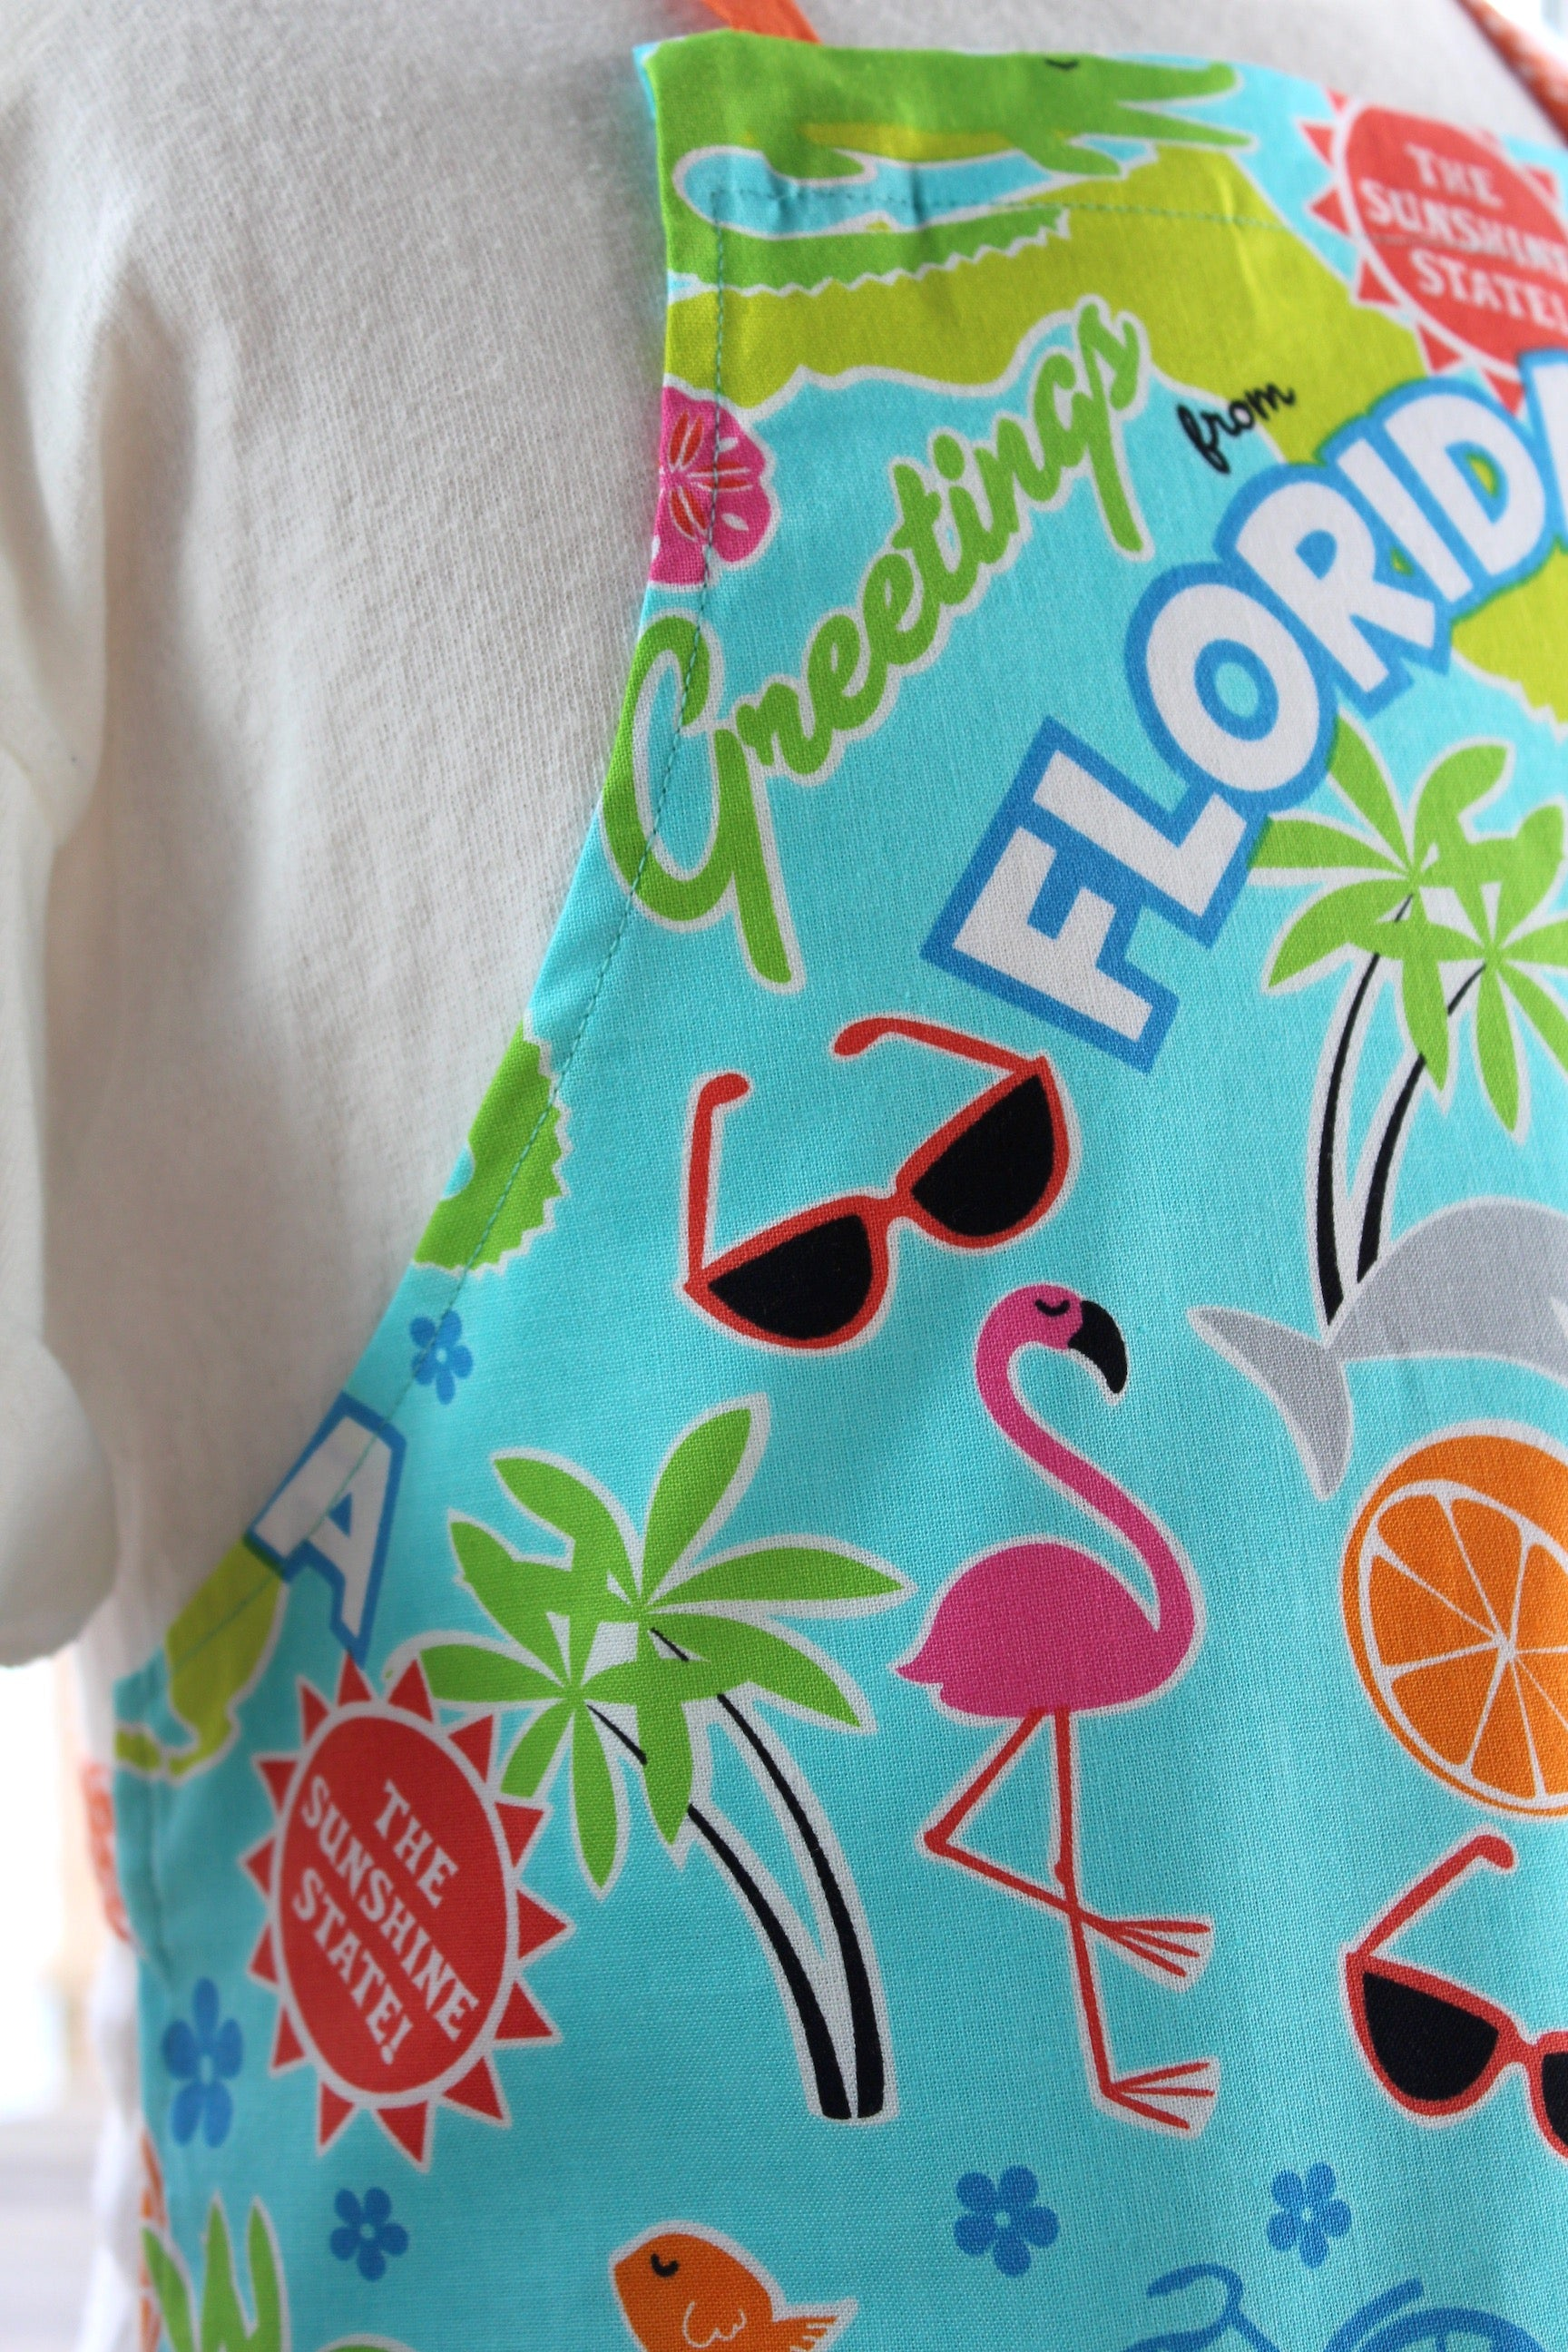 Greetings from florida kids apron the blue peony greetings from florida kids apron kristyandbryce Image collections